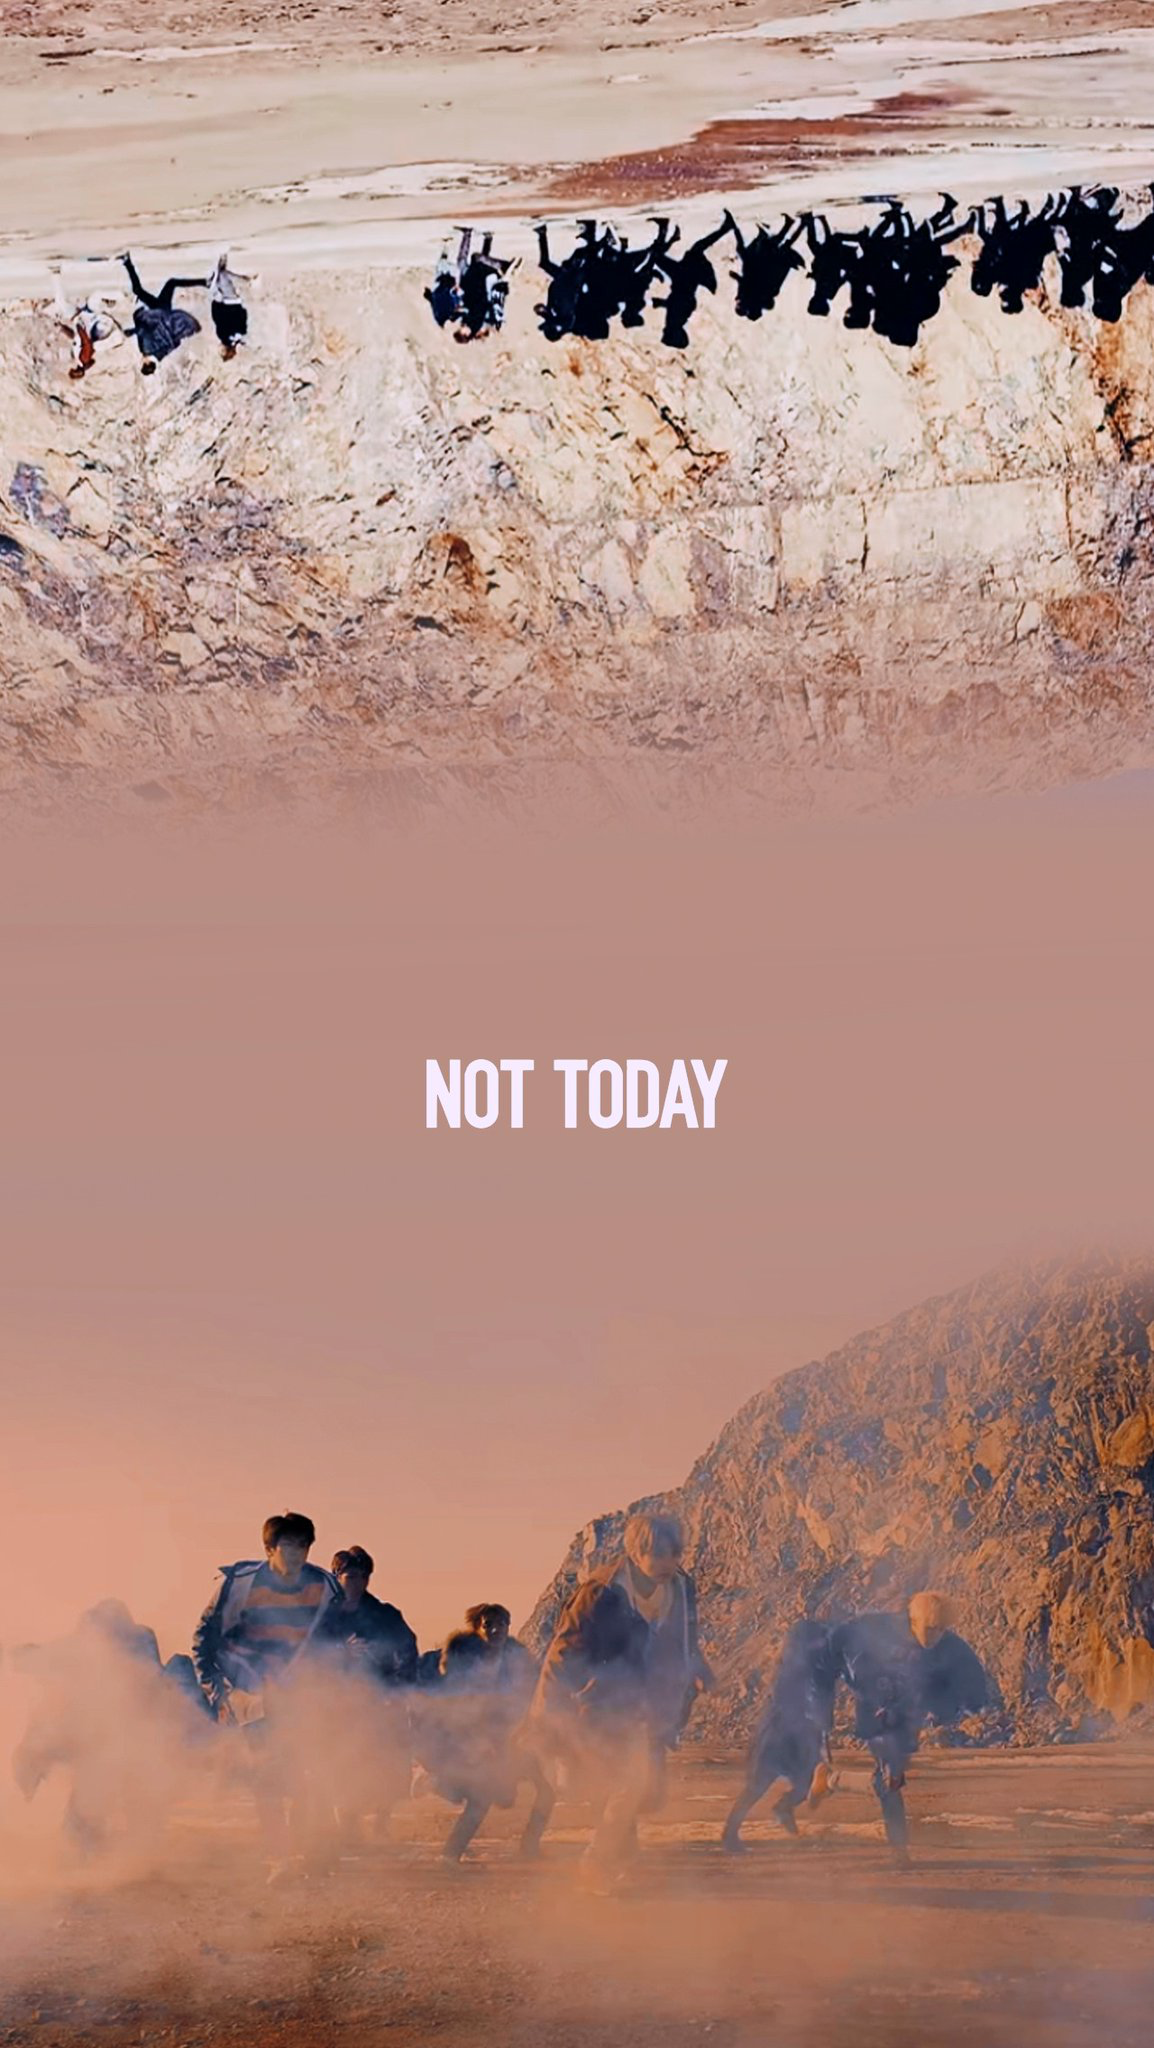 Bts bts wallpapers not today you never walk alone for Wallpaper walk